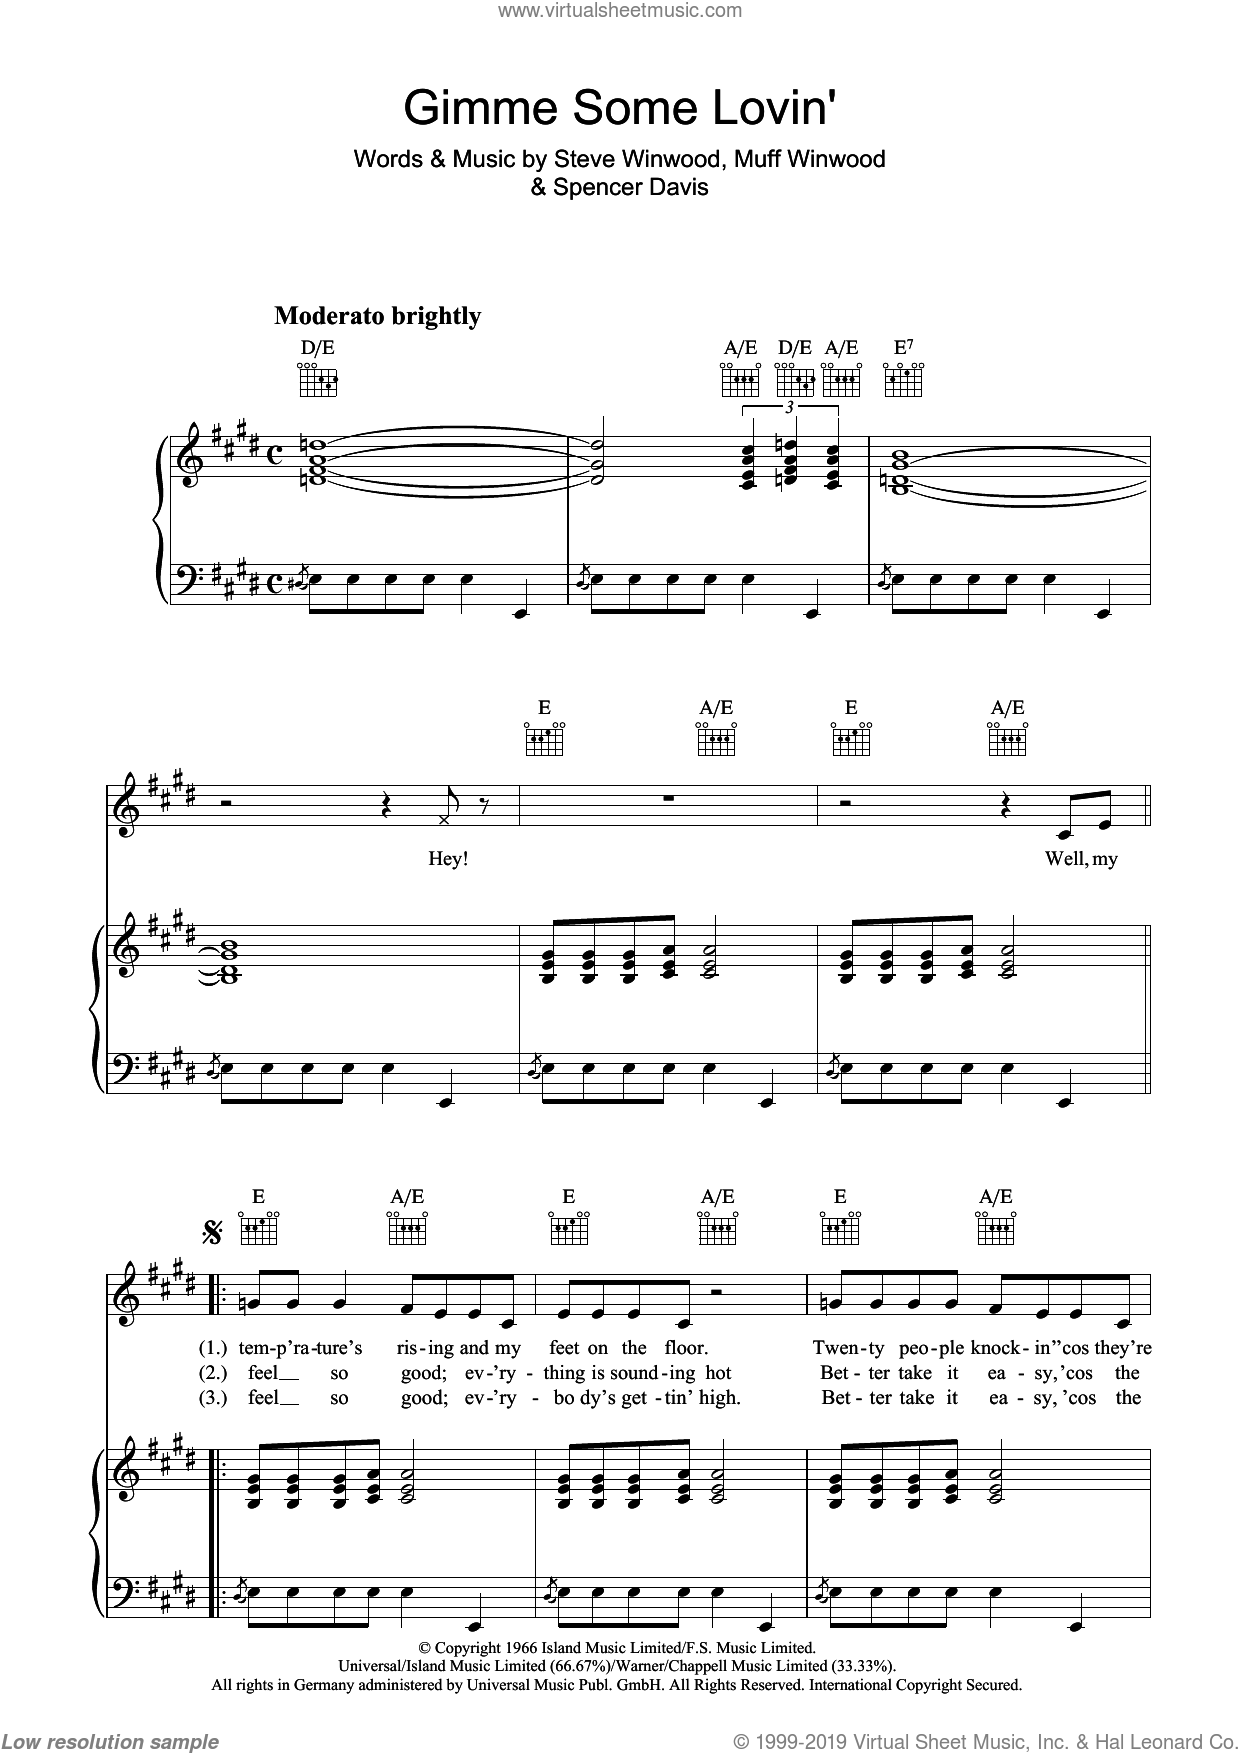 Gimme Some Lovin' sheet music for voice, piano or guitar by Spencer Davis, Muff Winwood and Steve Winwood. Score Image Preview.